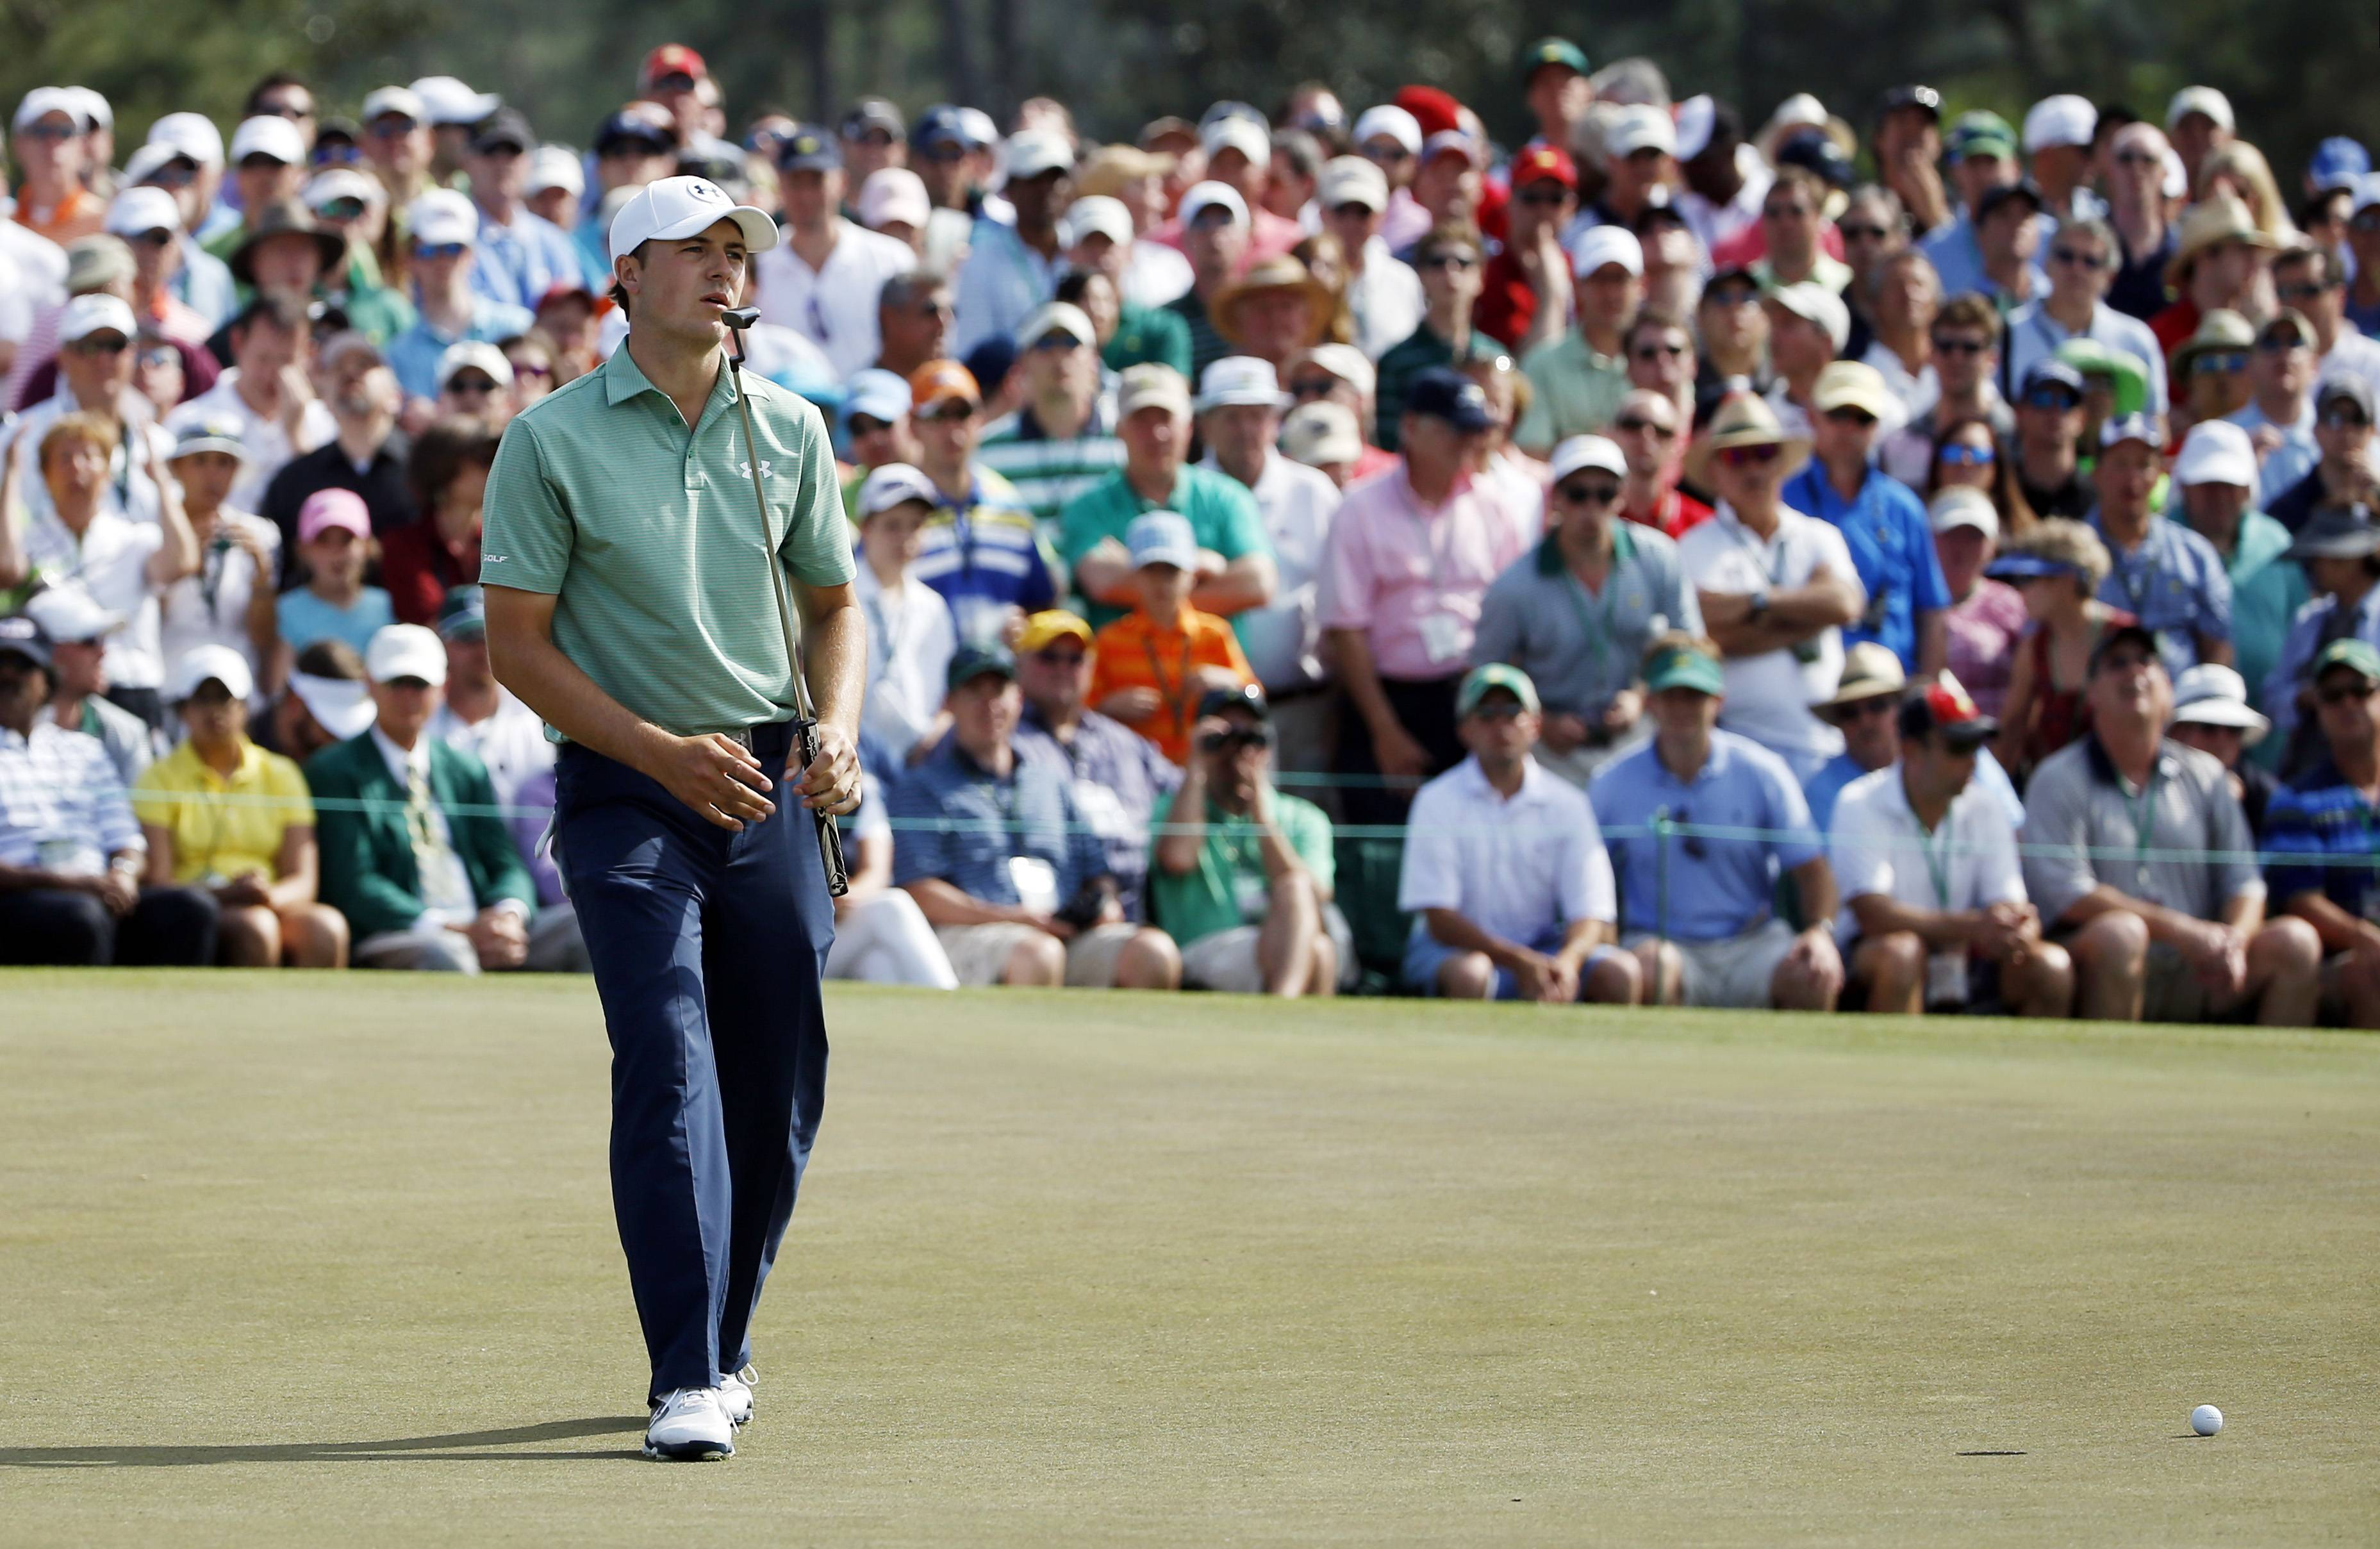 Jordan Spieth reacts as his ball misses the cup on the ninth hole in Sunday's final round of the Masters.